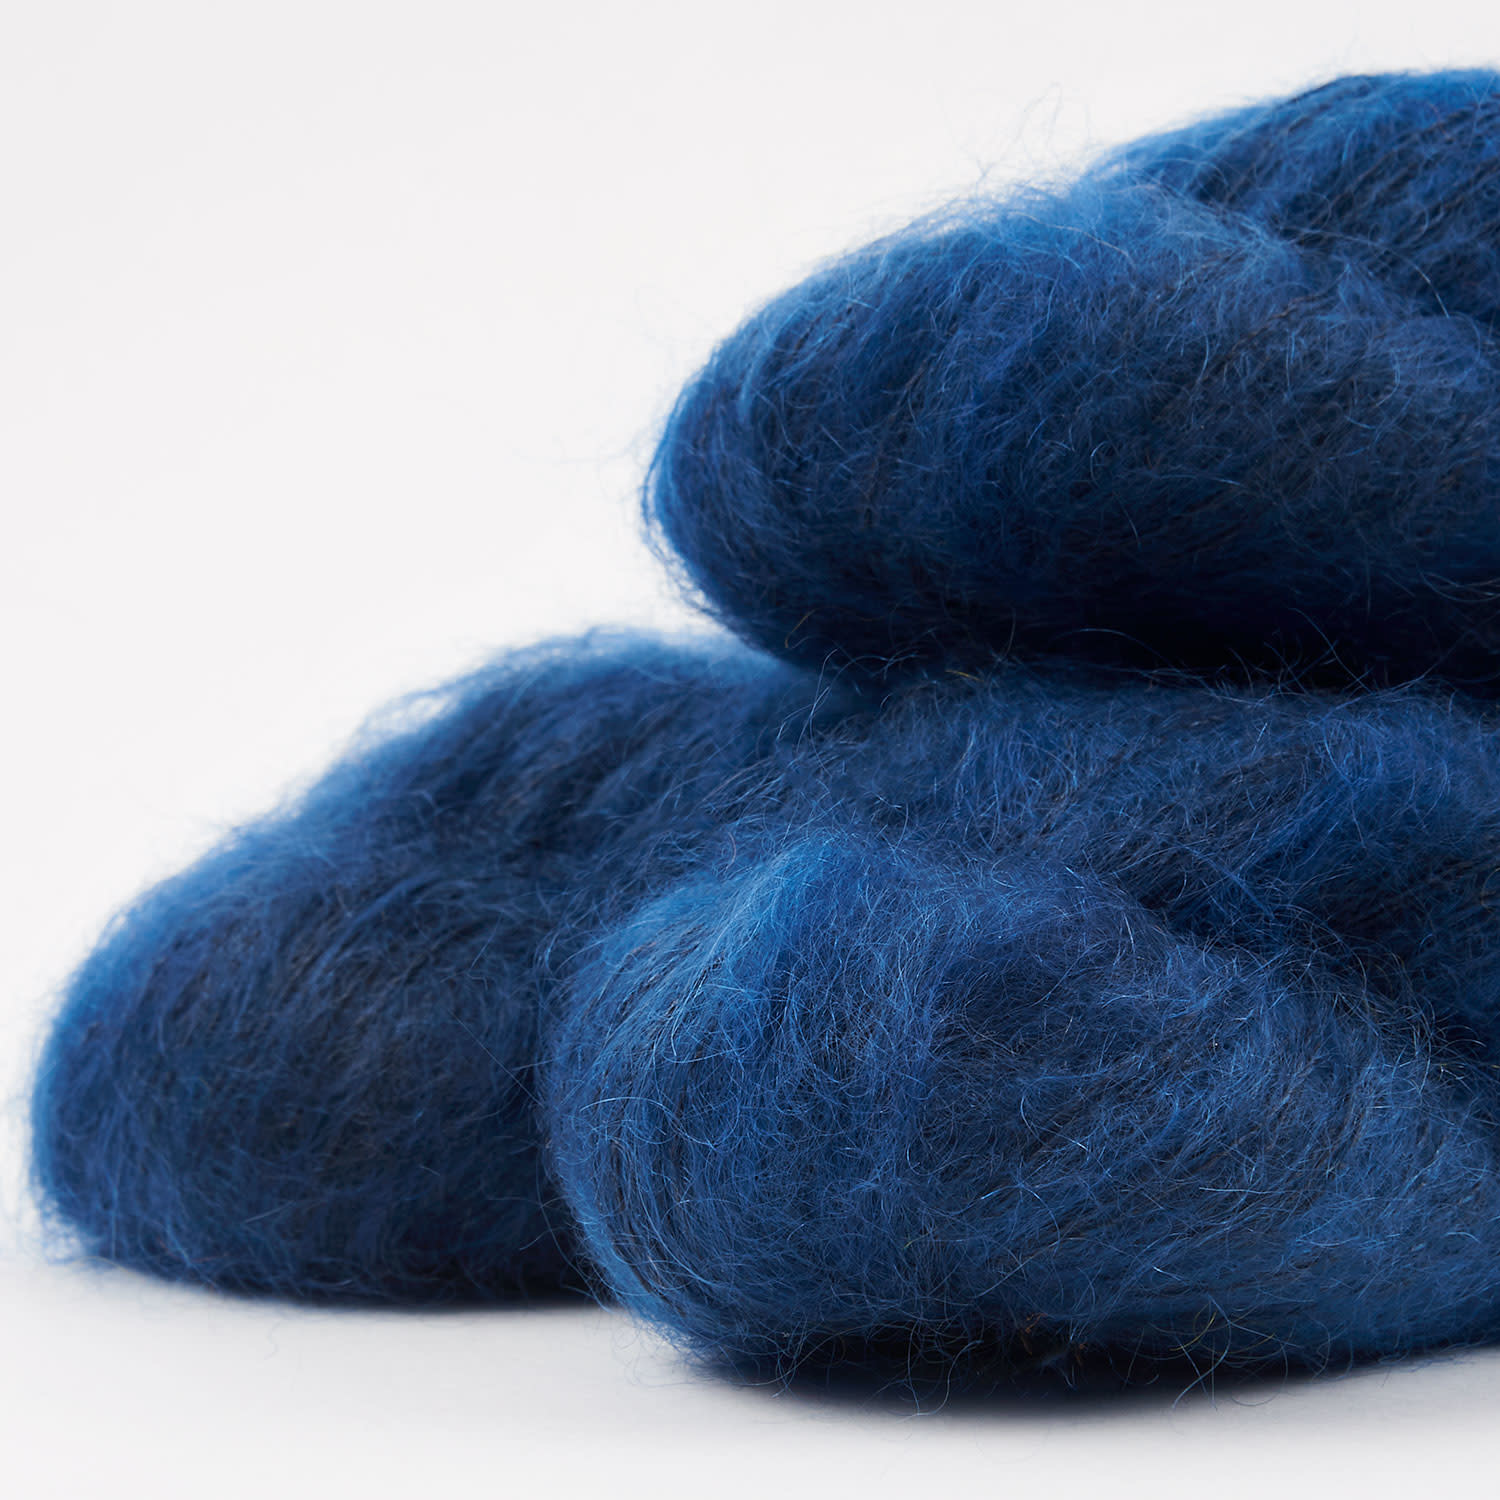 WALK collection KID MOHAIR LACE - MARINE